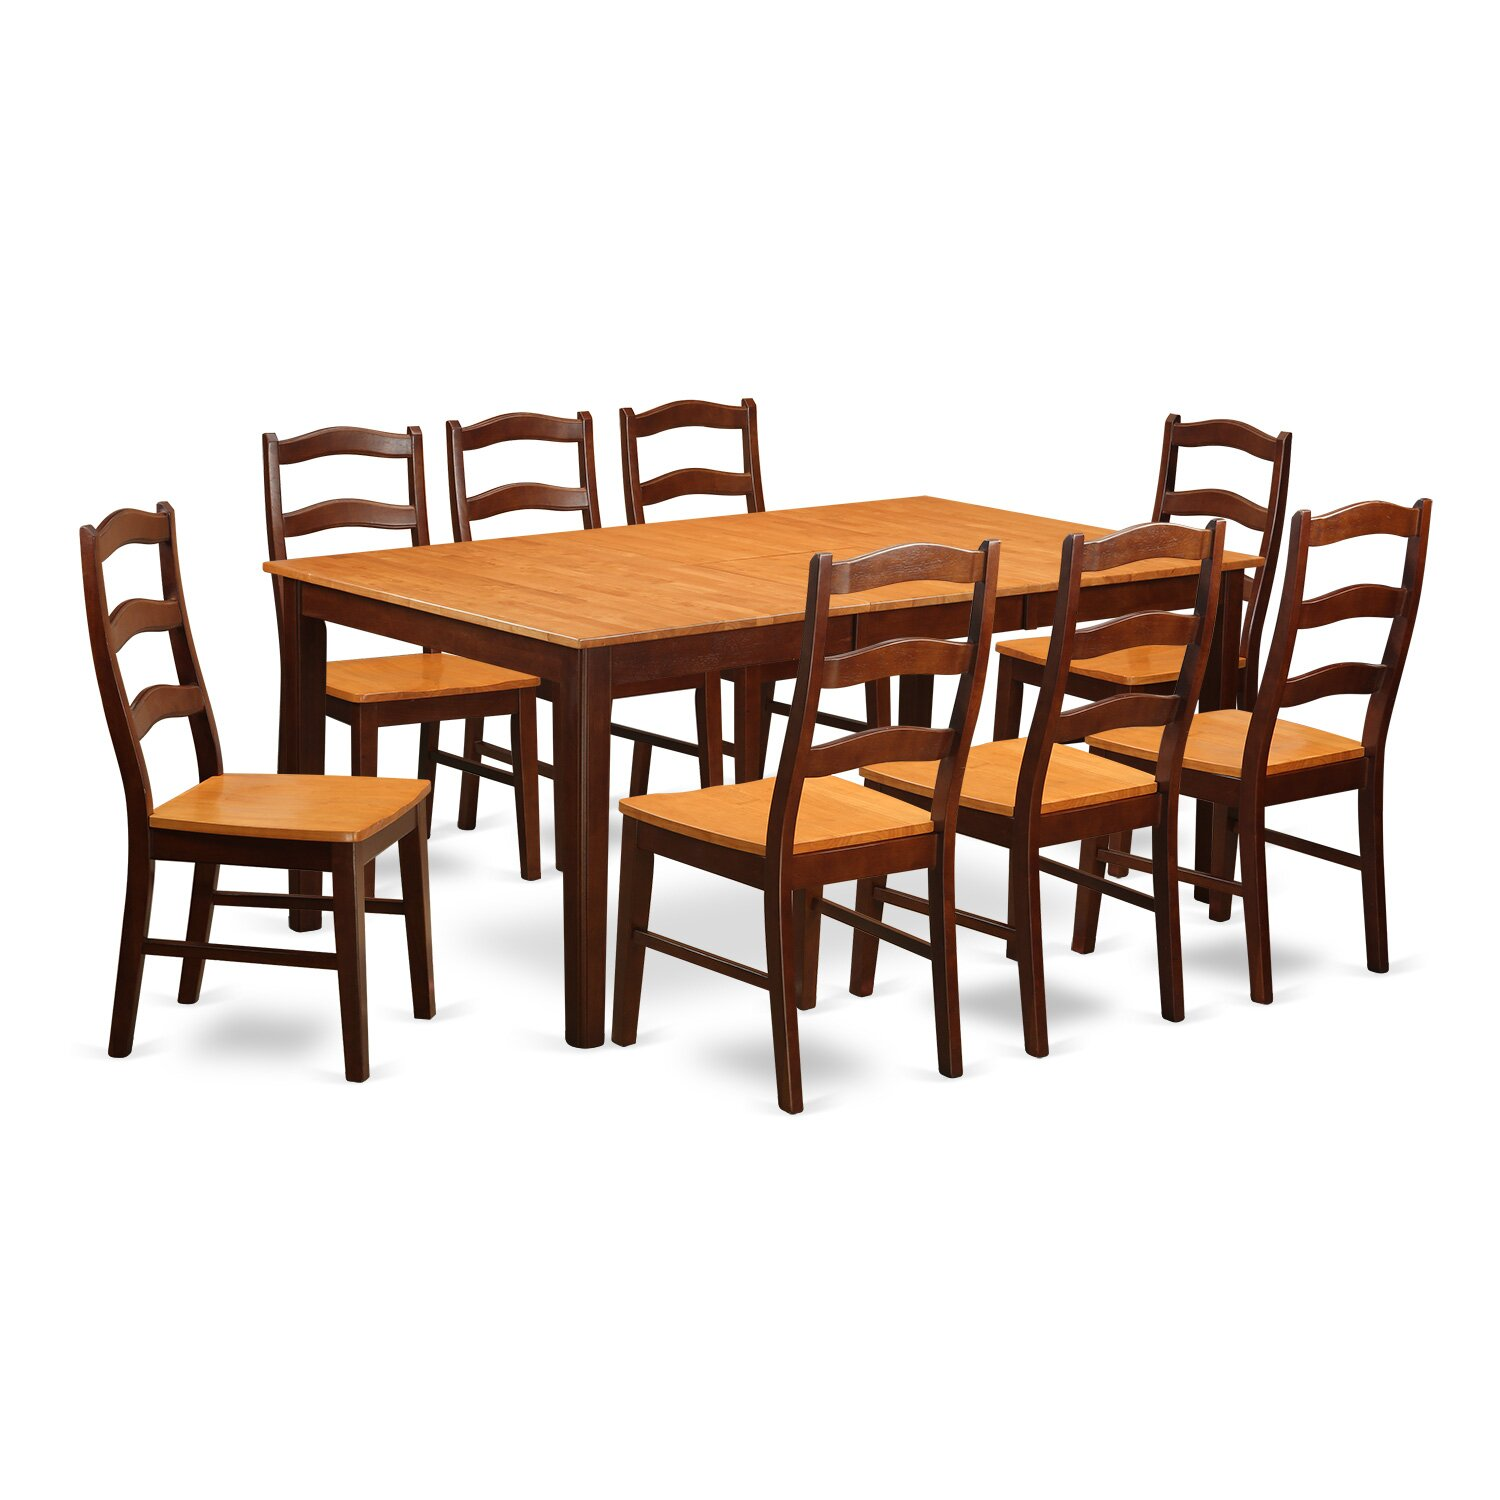 East west henley 9 piece dining set reviews for Dining room chair set